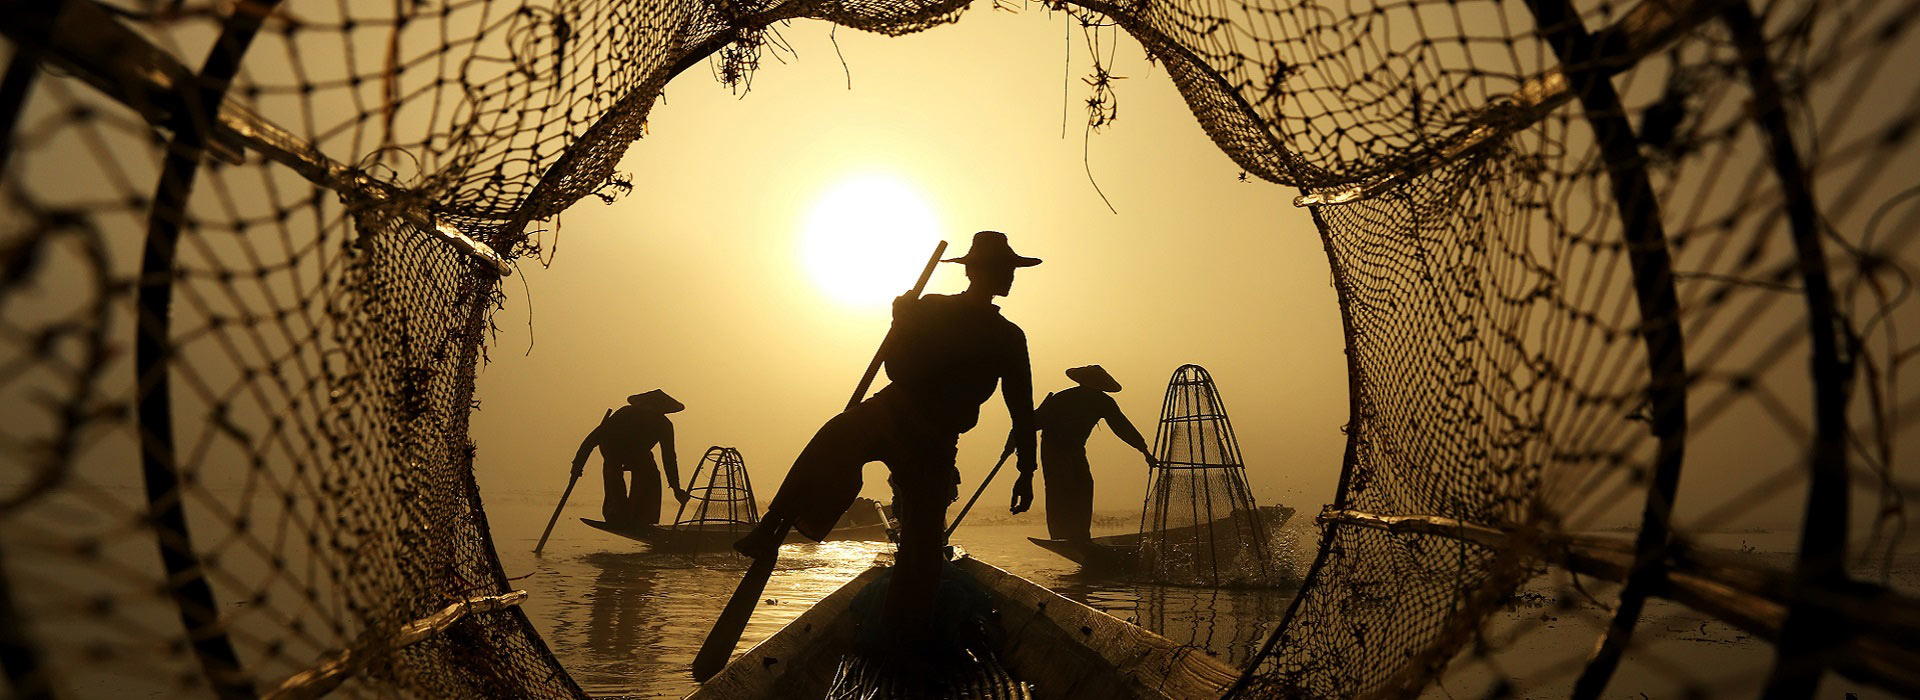 traditional_fisherman